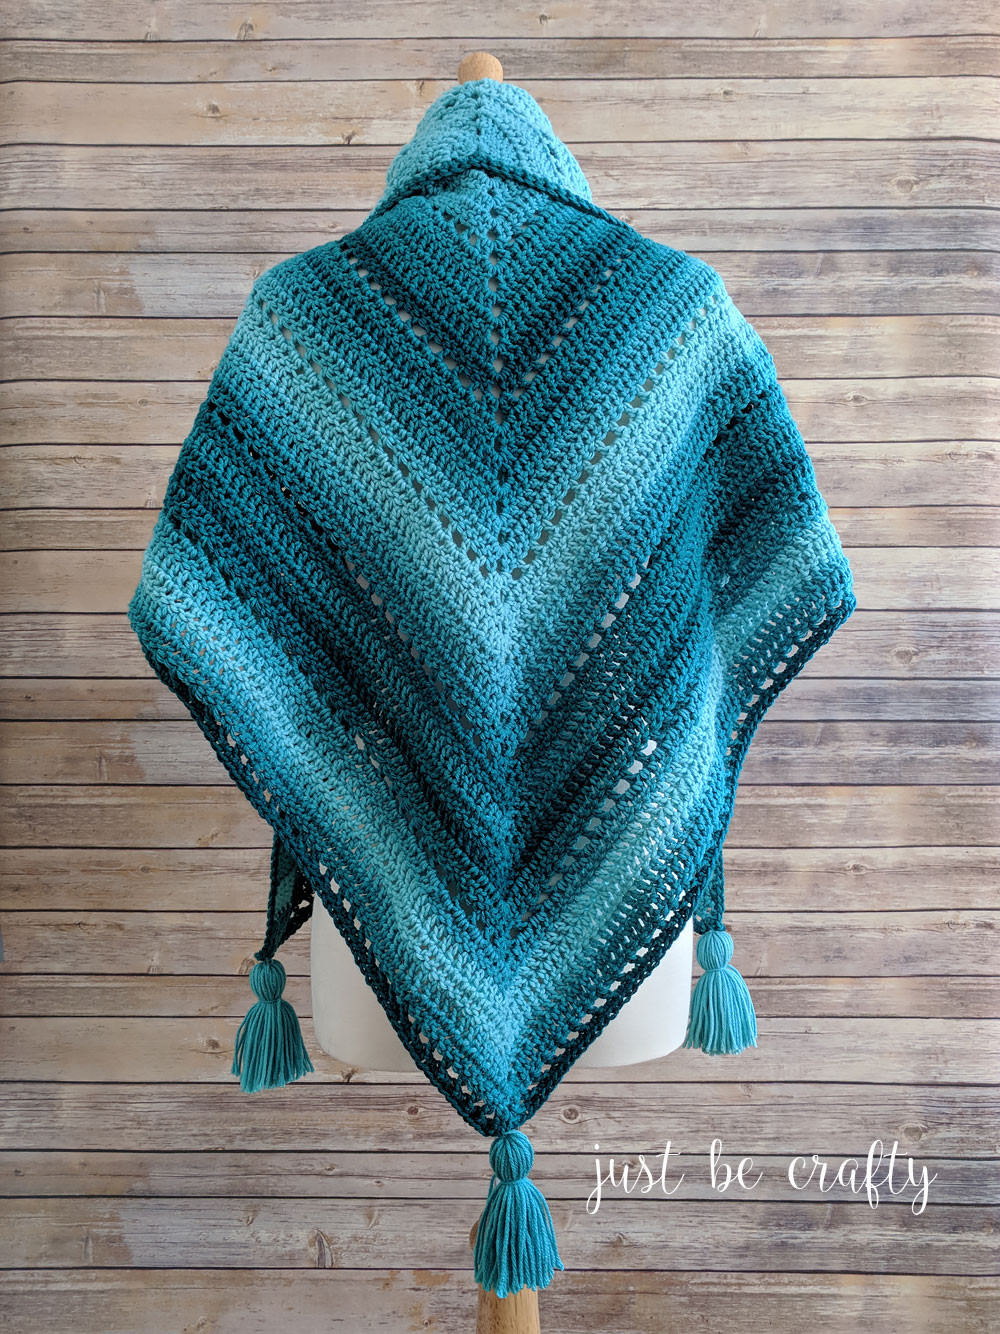 Crochet Triangle Shawl Pattern Free Crochet Pattern by